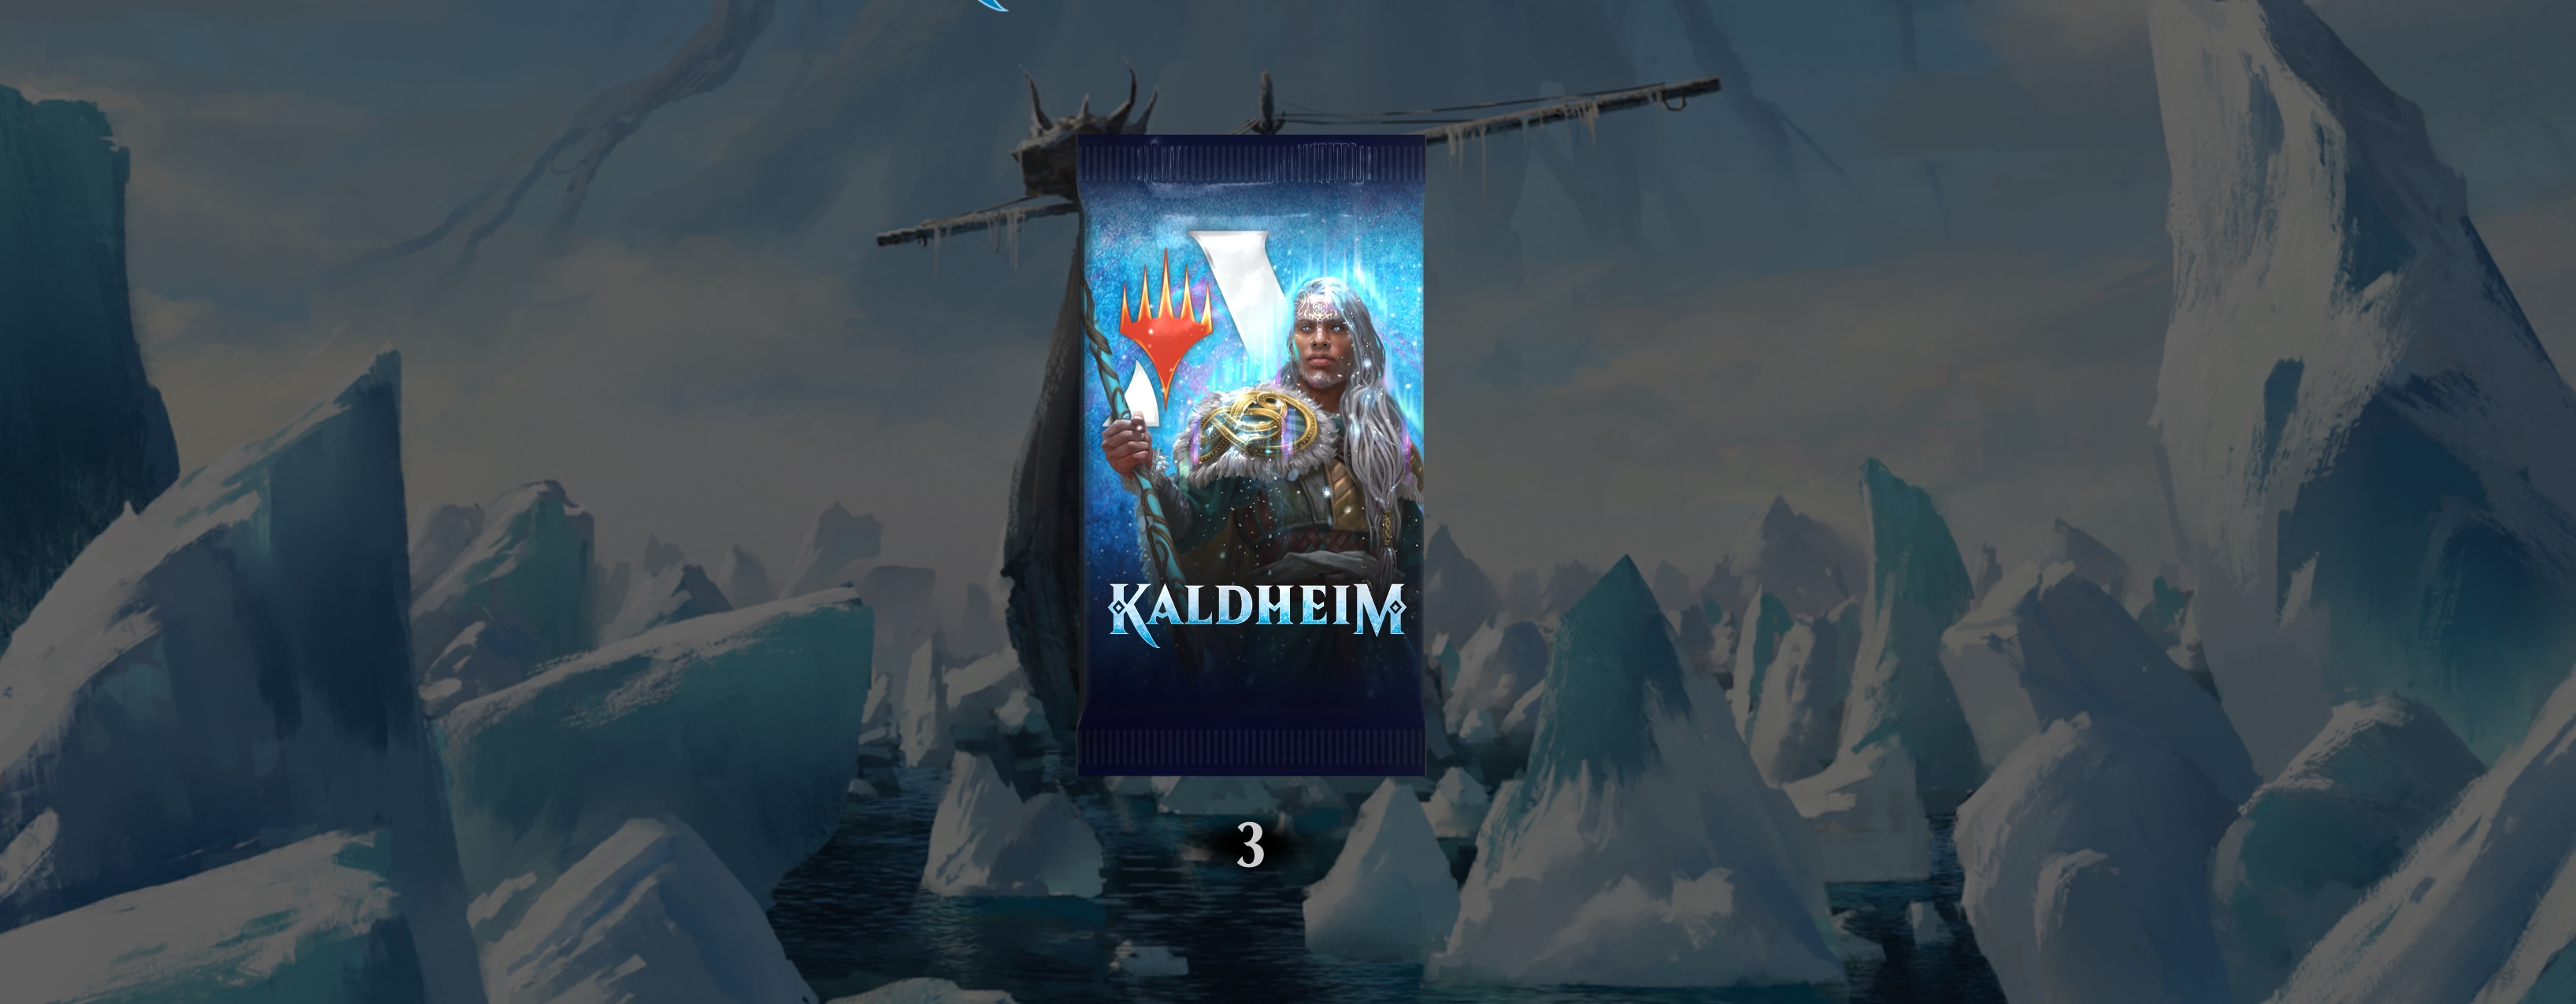 PSA: Grab some free packs in Magic: Arena now with the code 'PLAYKALDHEIM' screenshot